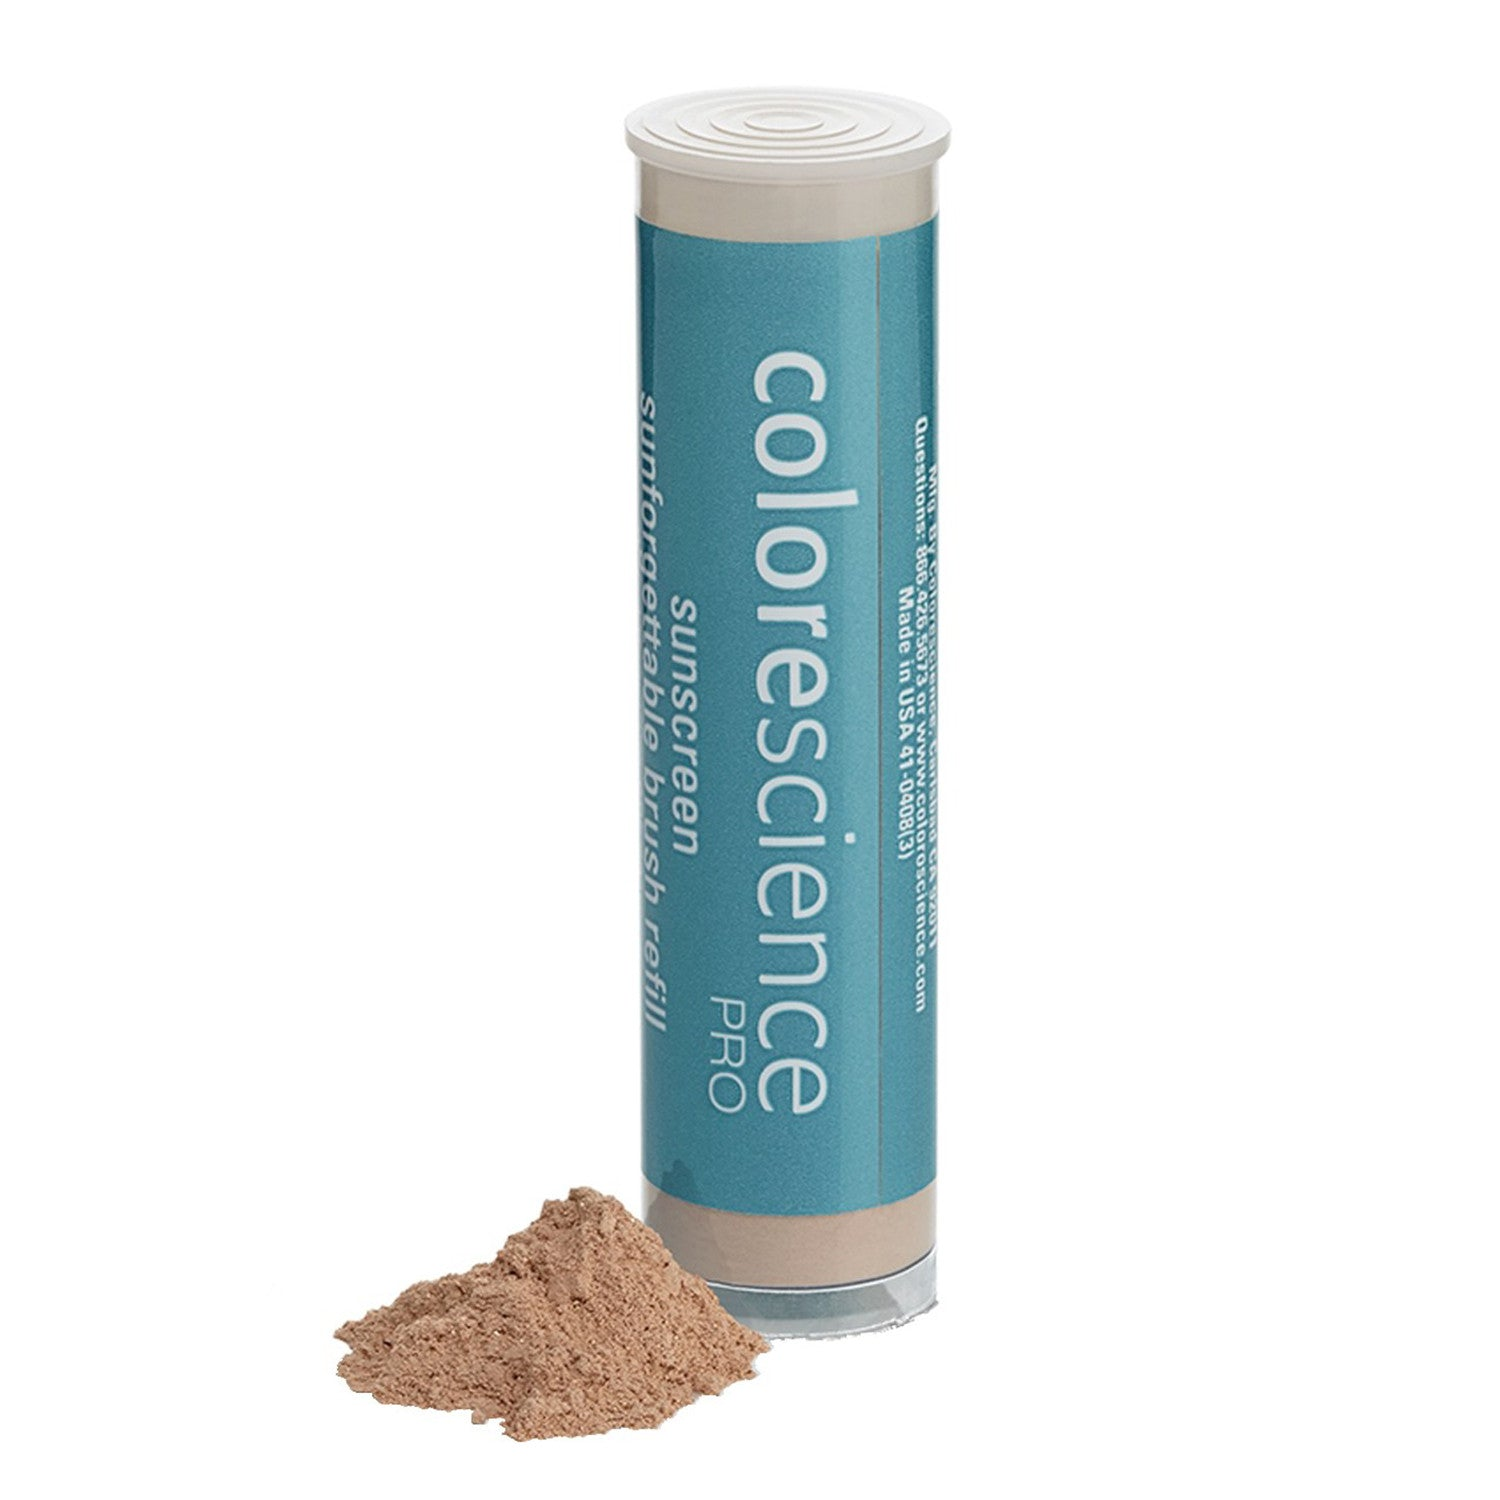 Sunforgettable Brush-On Sunscreen by colorescience #16